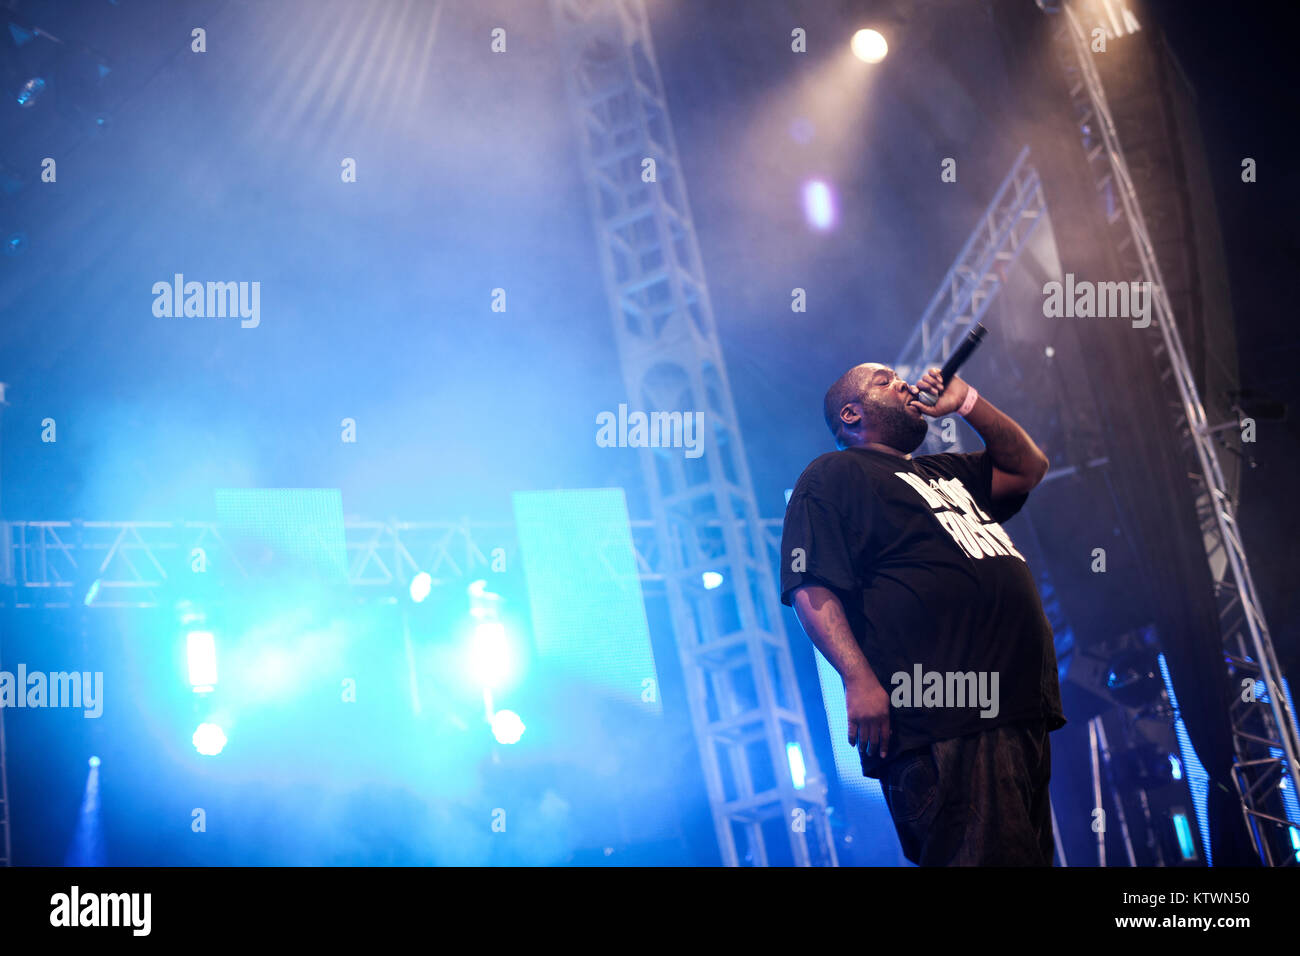 The American rapper Killer Mike is a big man and a well-respected poet in American hip hop. Denmark 2013. - Stock Image